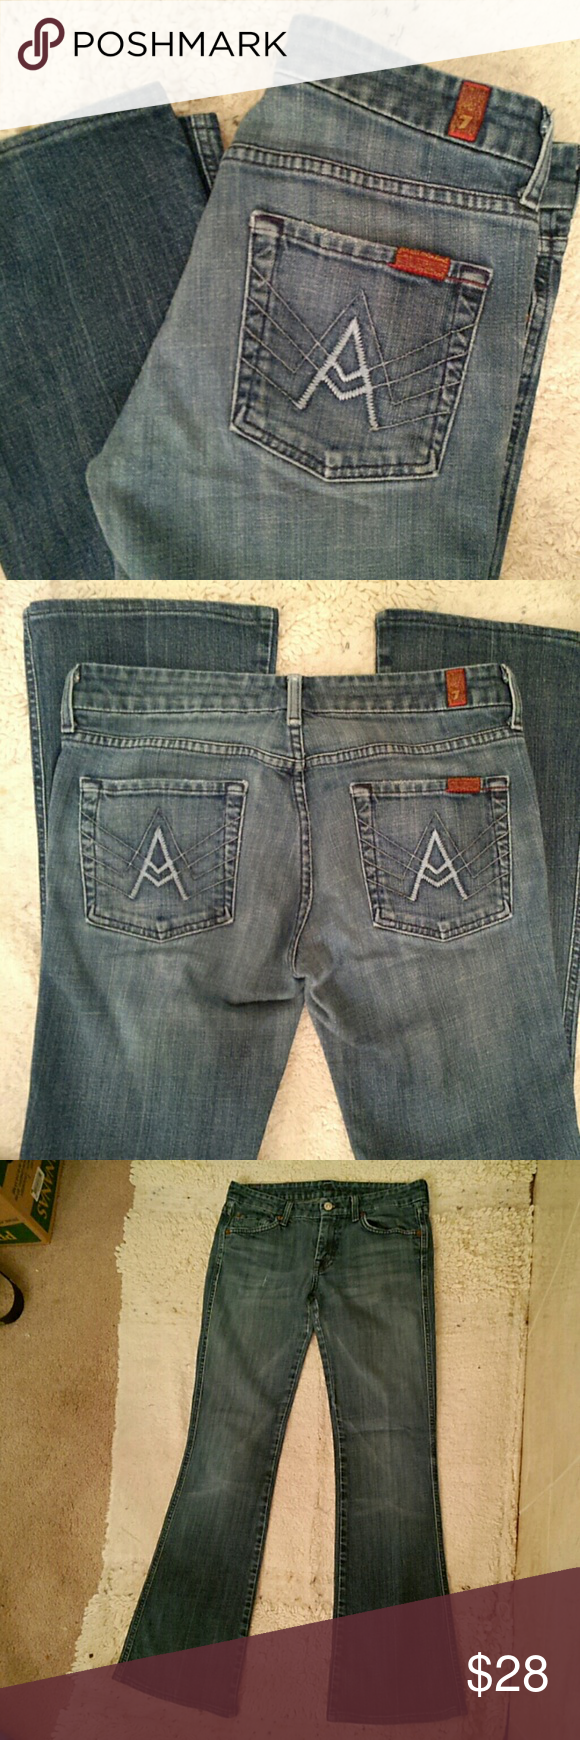 """7FAM """"A"""" pocket jeans medium blue; A pocket style; size 28; inseam 30.5""""; some wear from the legs rubbing - see pic 4    (T-16) 7 for all Mankind Jeans Boot Cut"""